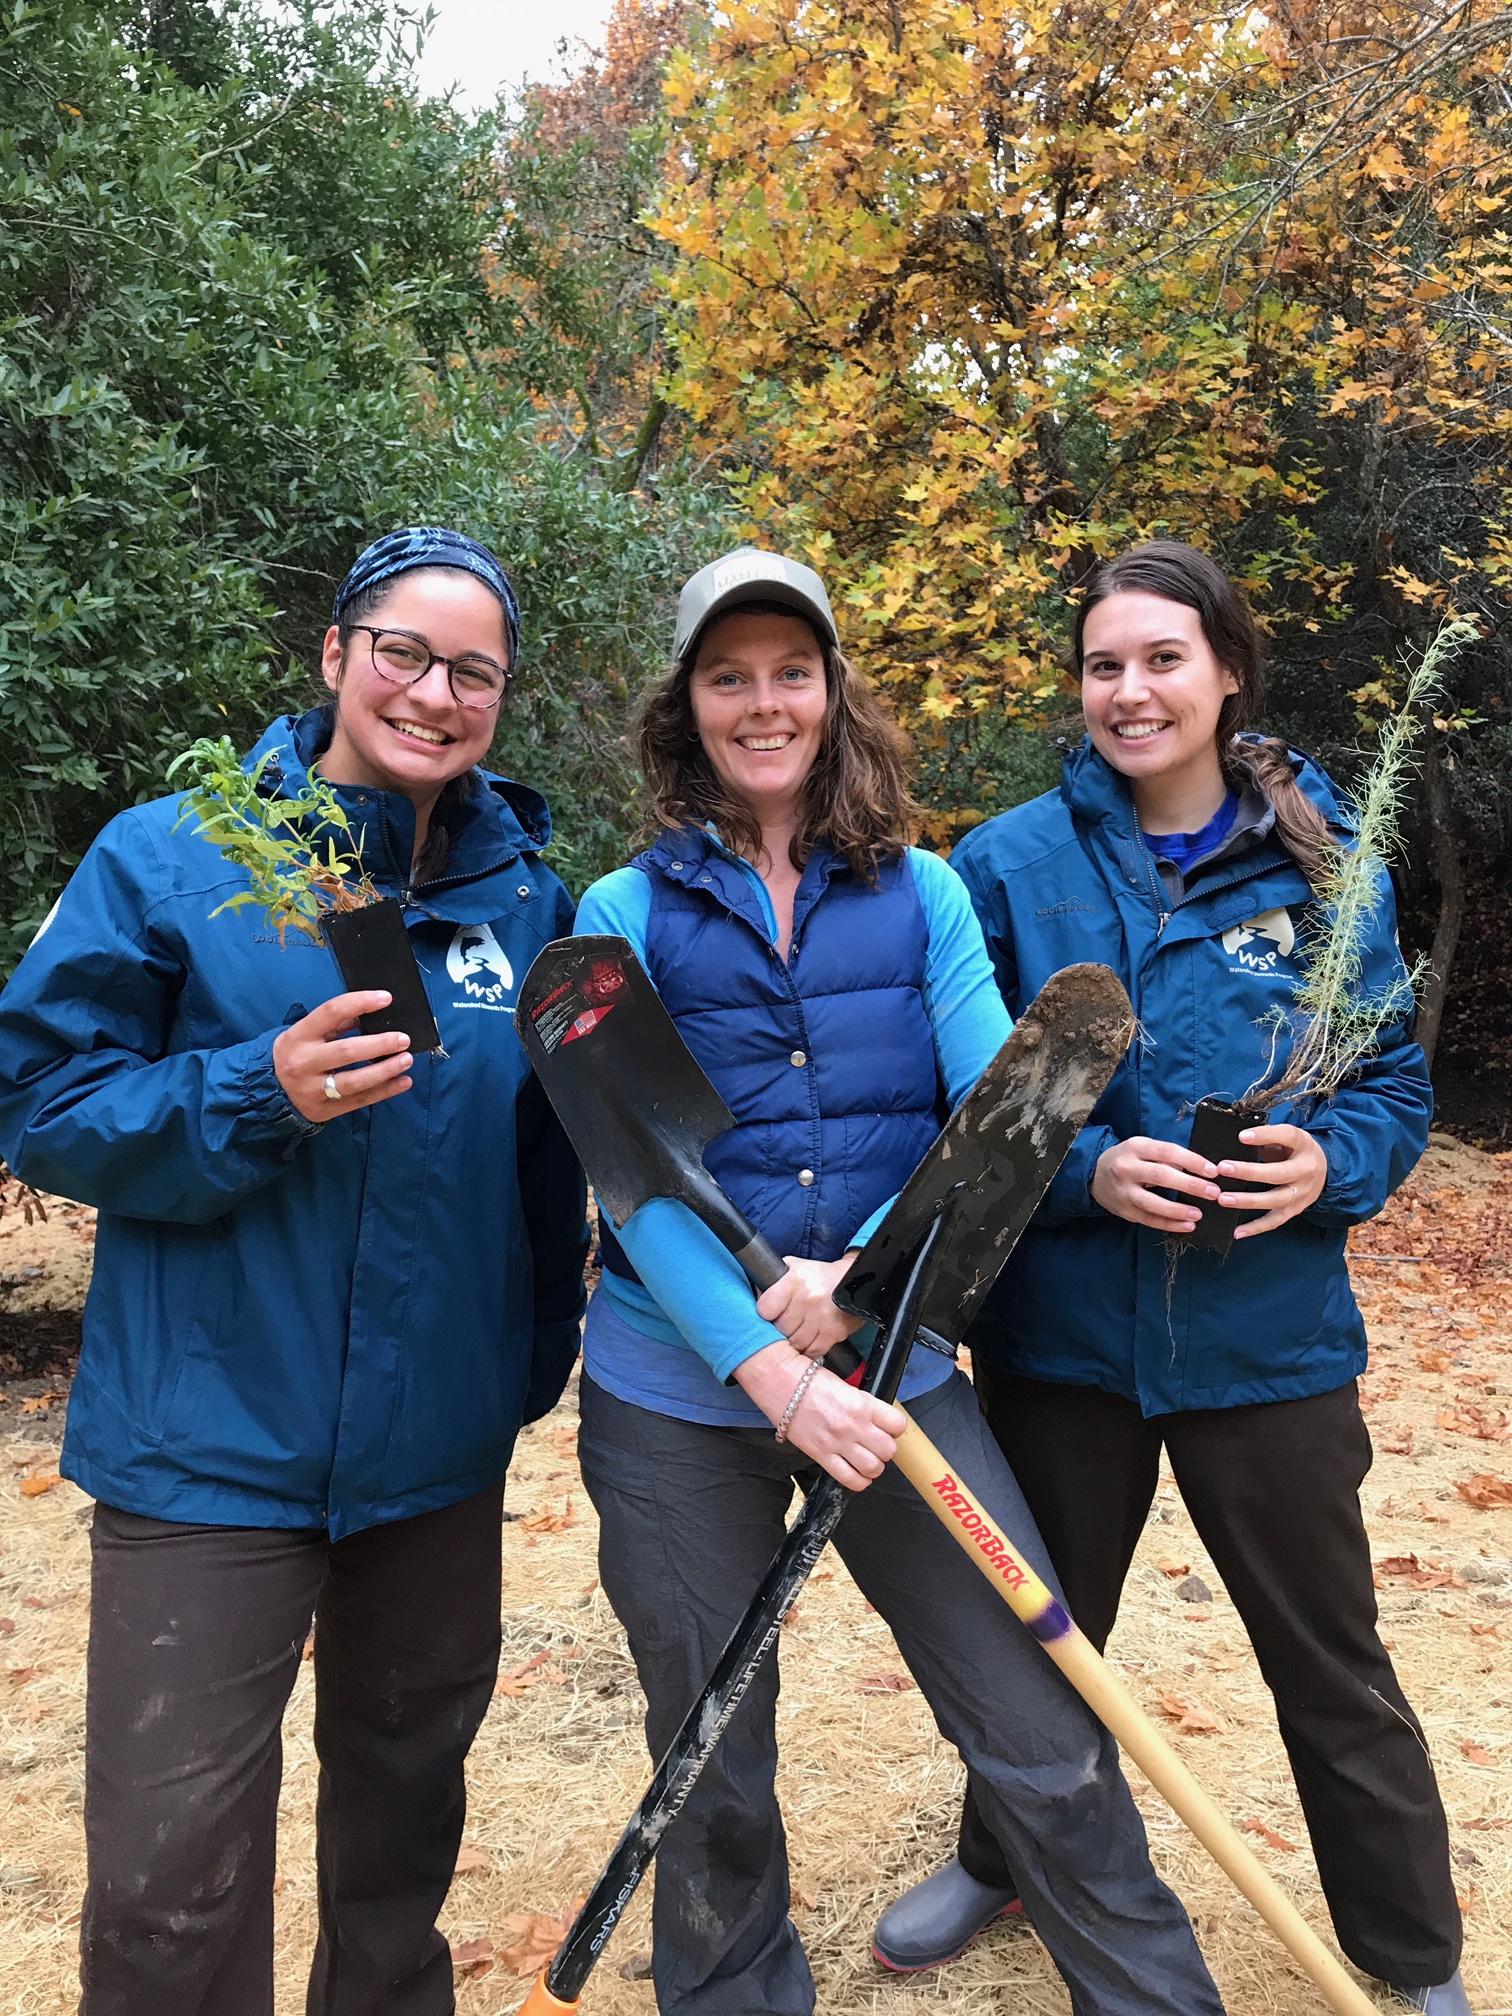 Nina (left) with her Grassroots Ecology co-workers Claire (middle) and Becca (right)